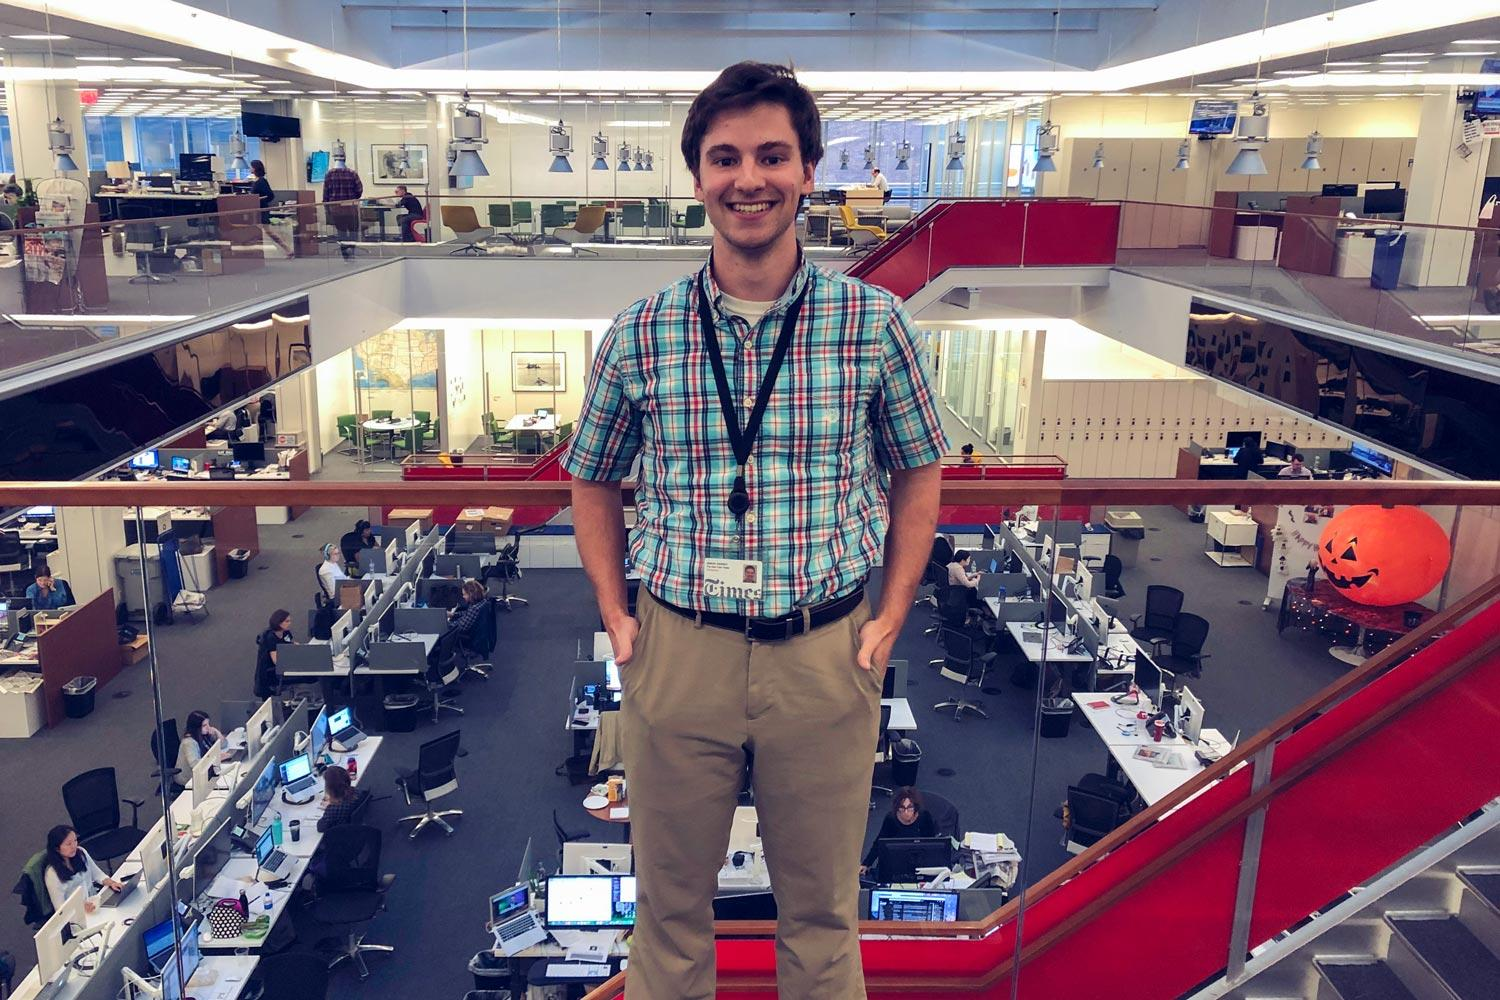 Samuel Ezersky is a UVA engineering alumnus and a crossword puzzle editor at The New York Times.